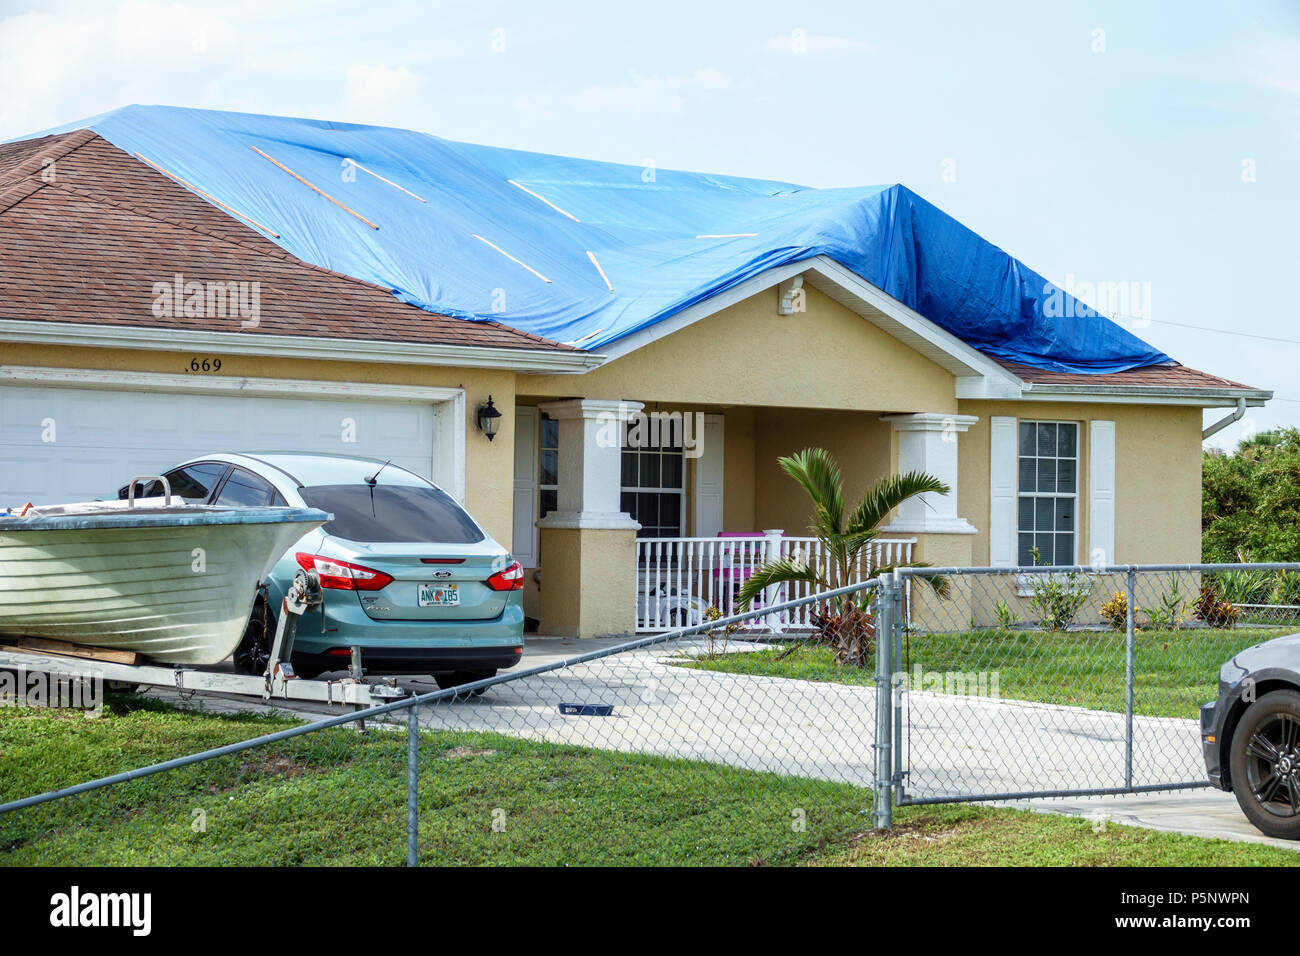 Fort Ft. Myers Florida Lehigh Acres after Hurricane Irma storm wind damage destruction aftermath blue tarp waterproof covering roof house home residen - Stock Image